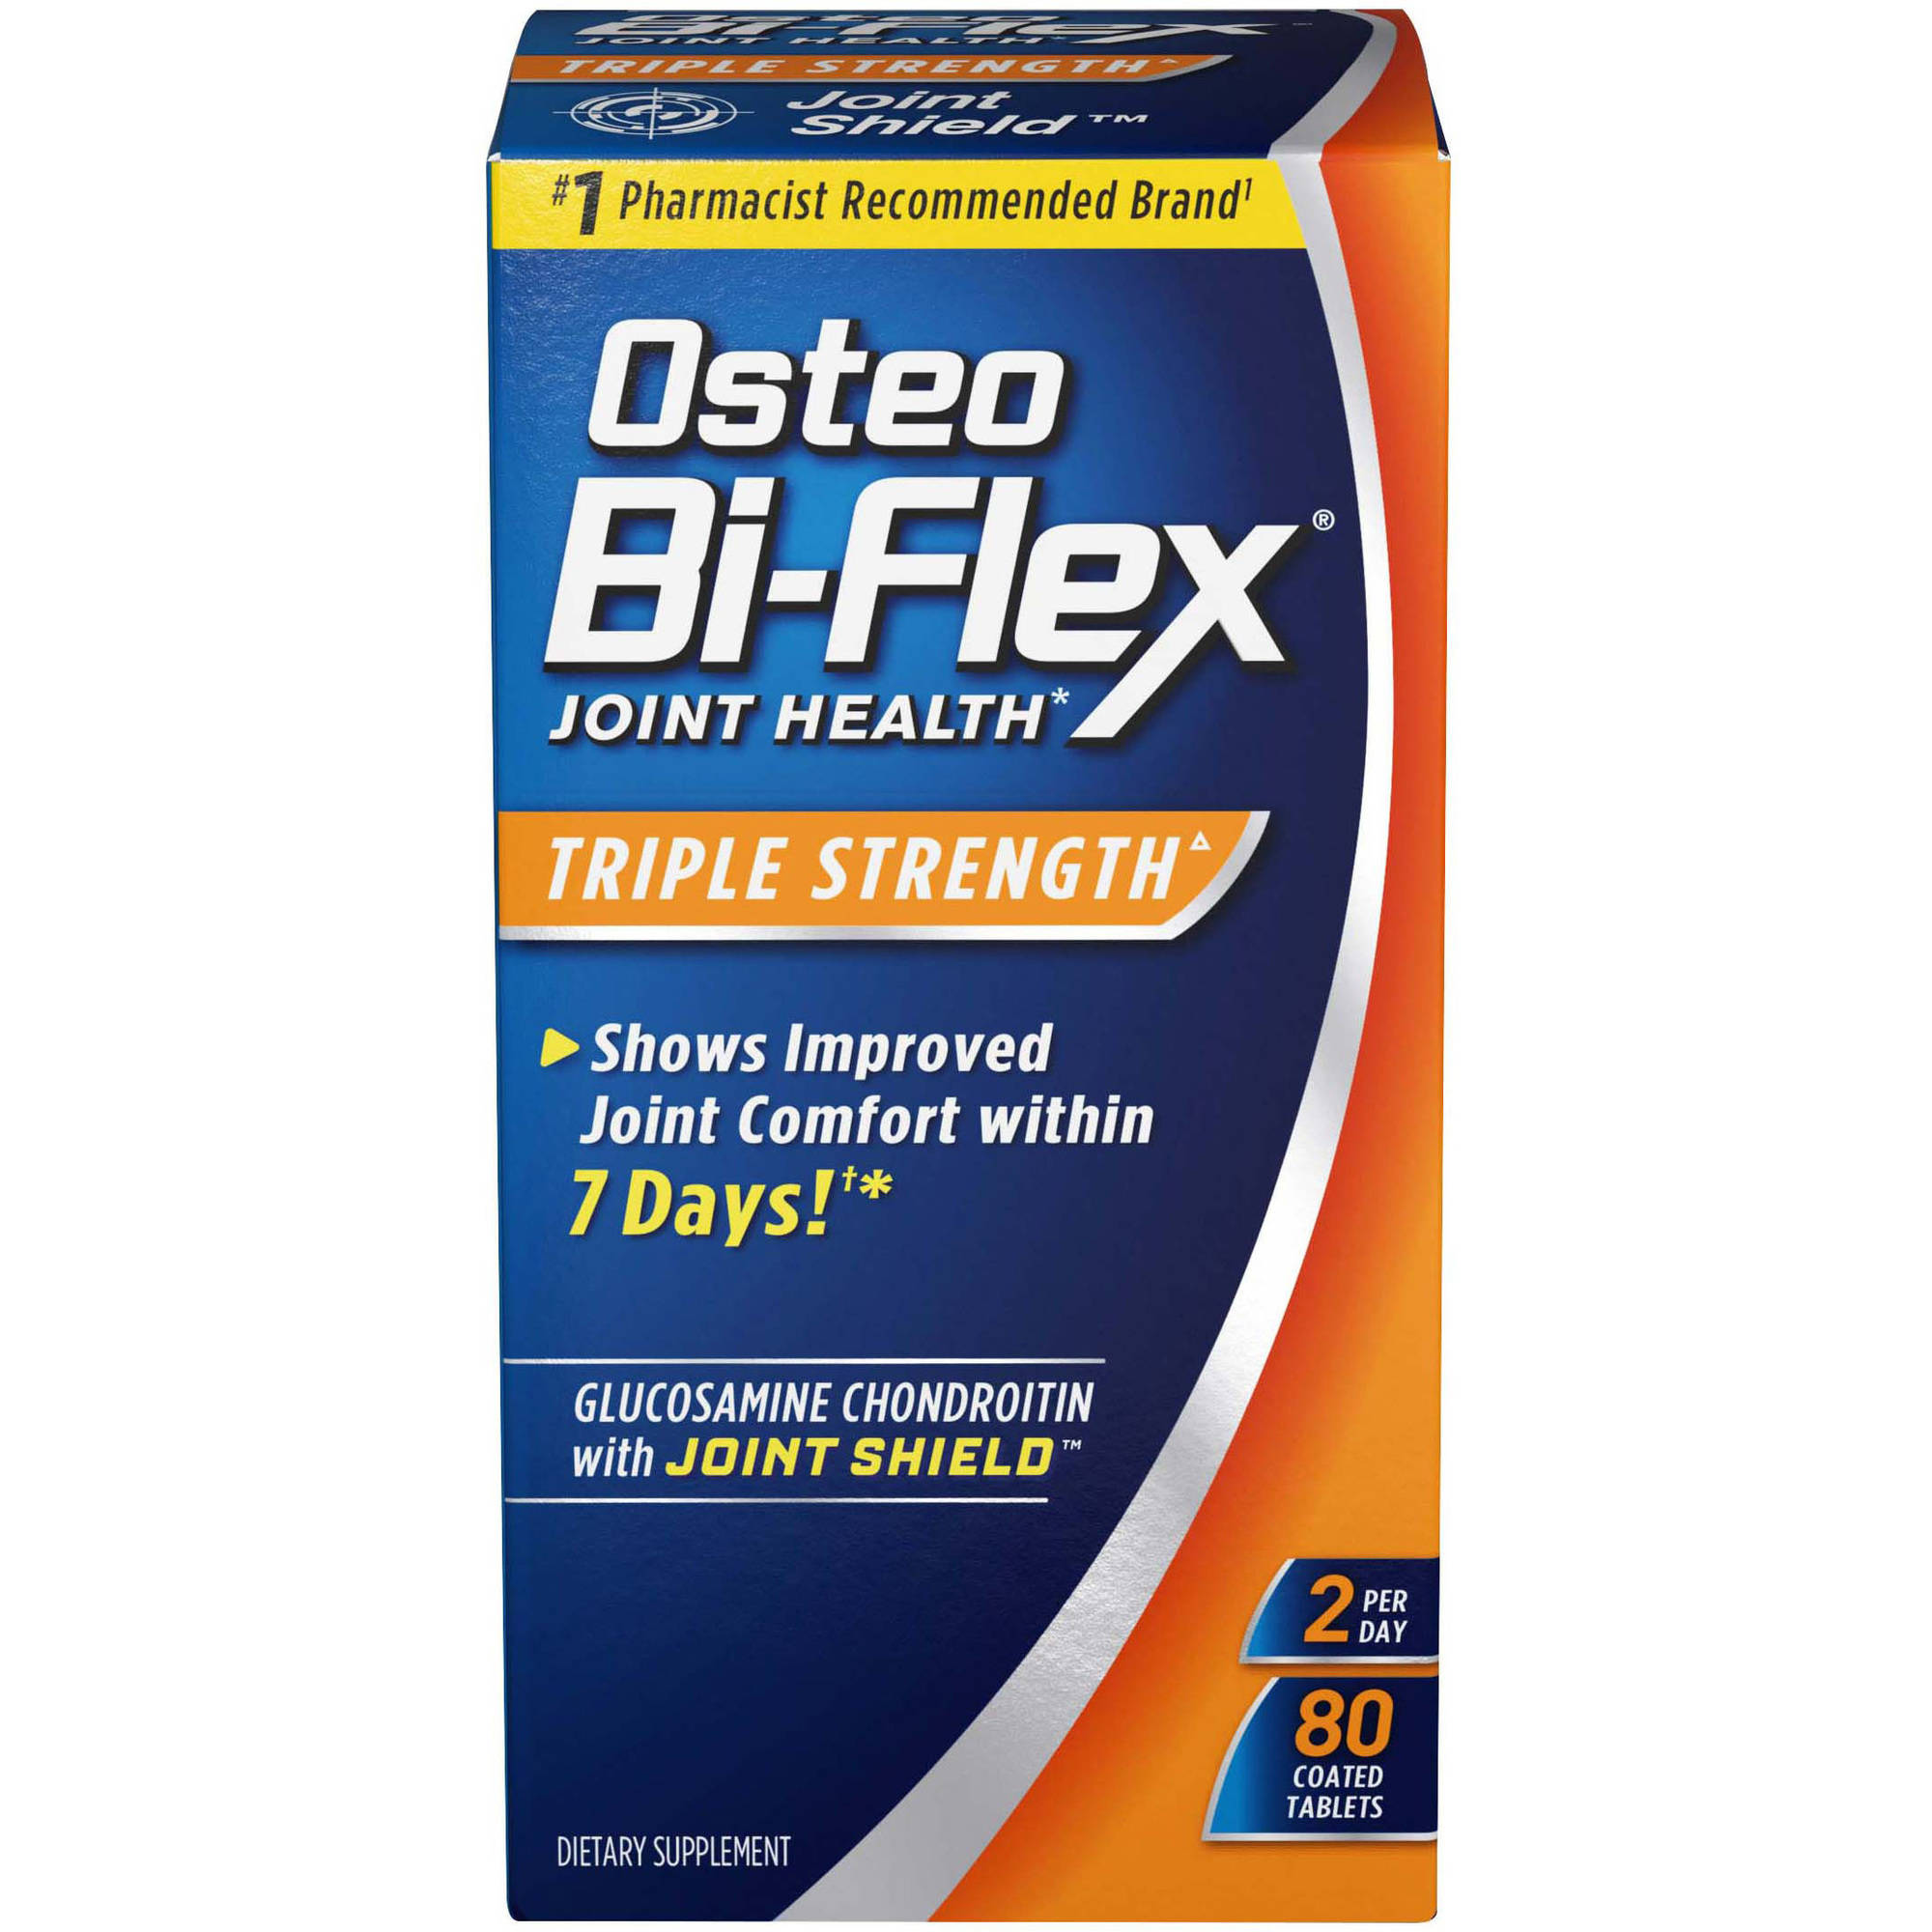 Osteo Bi-flex Dietary Supplement Glucosamine Chondroitin Msm With Joint Shield 80 ct